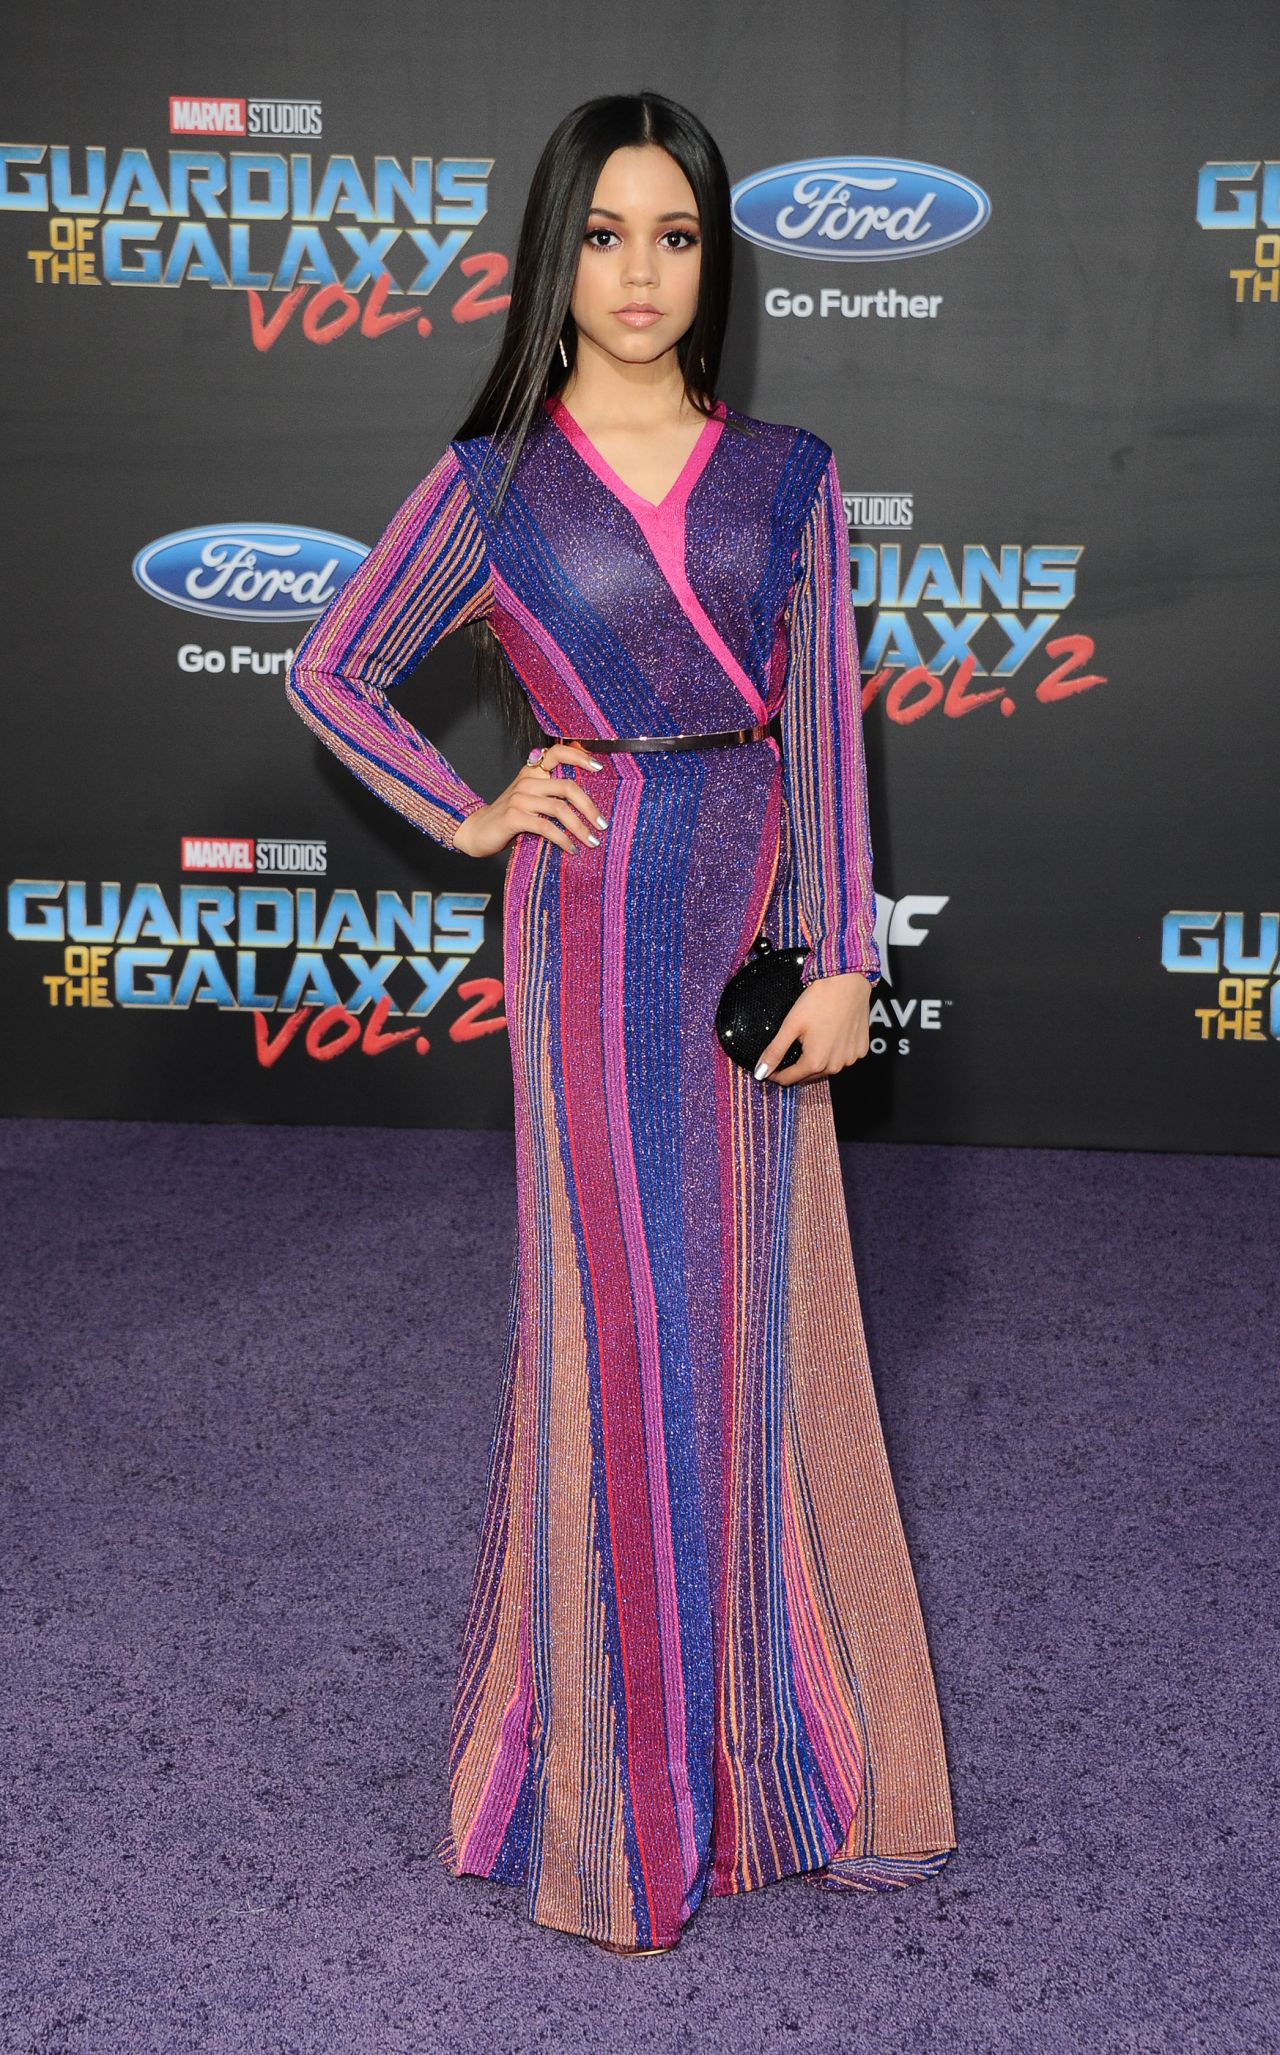 Jenna Ortega - Guardians Of The Galaxy Vol 2 Premiere In Los Angeles-1321